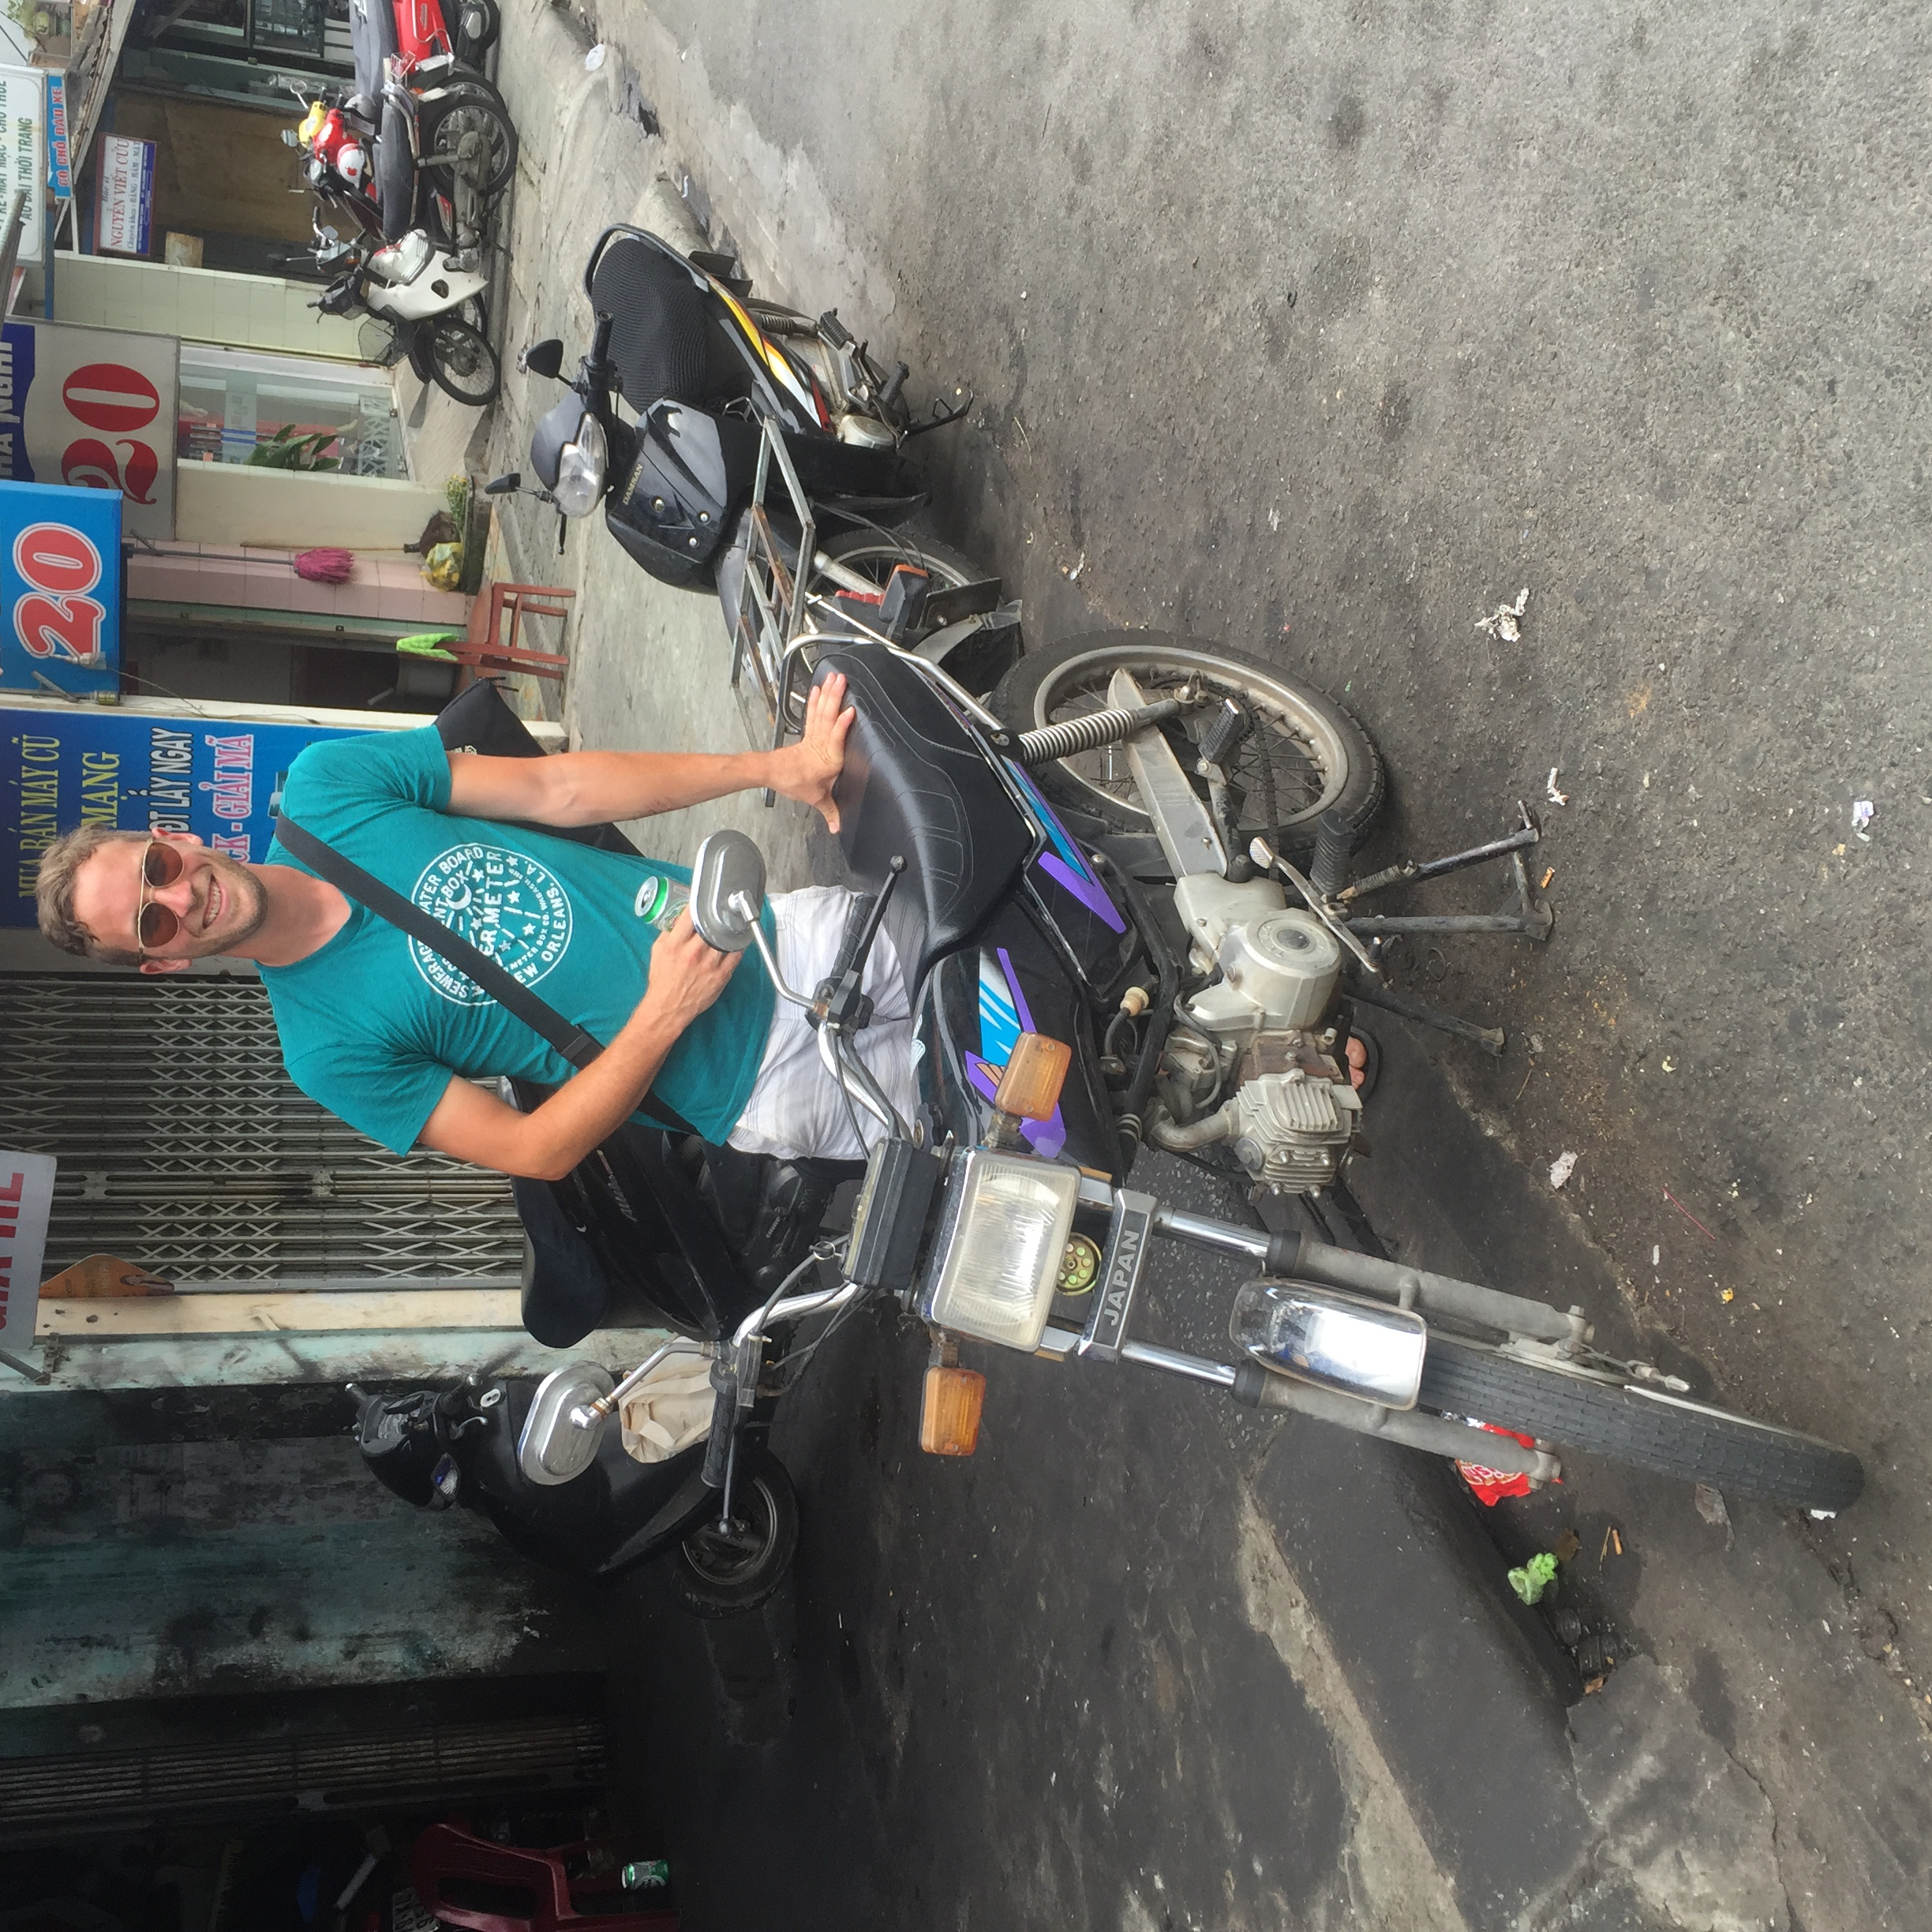 saying goodbye to Cheryl, the Honda Win that I drove up Vietnam